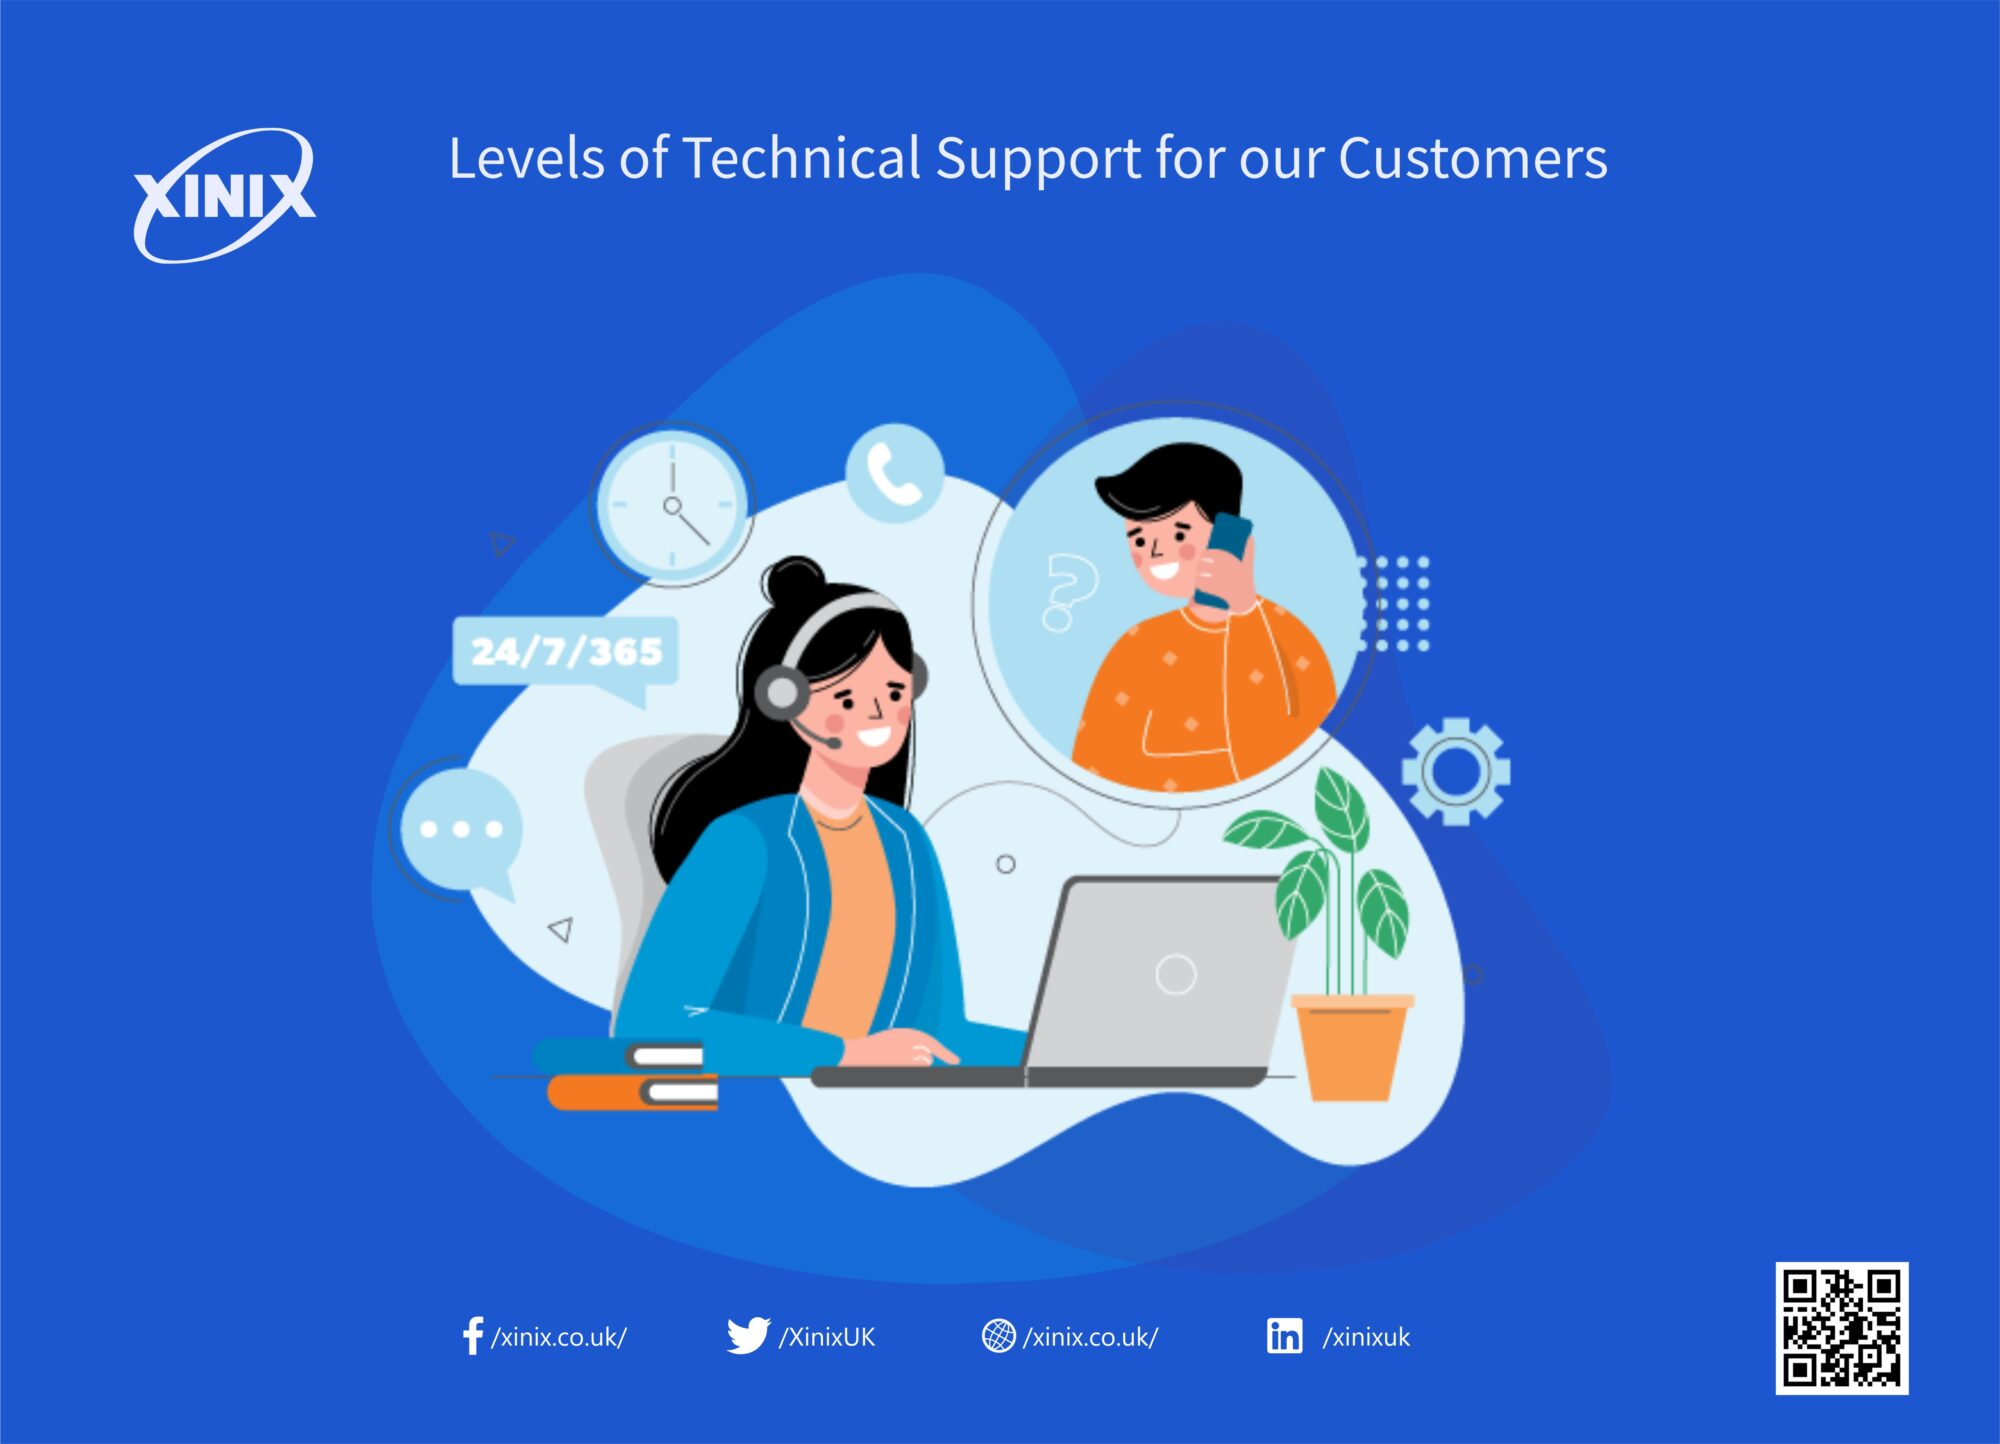 Levels of Technical Support for our Customers